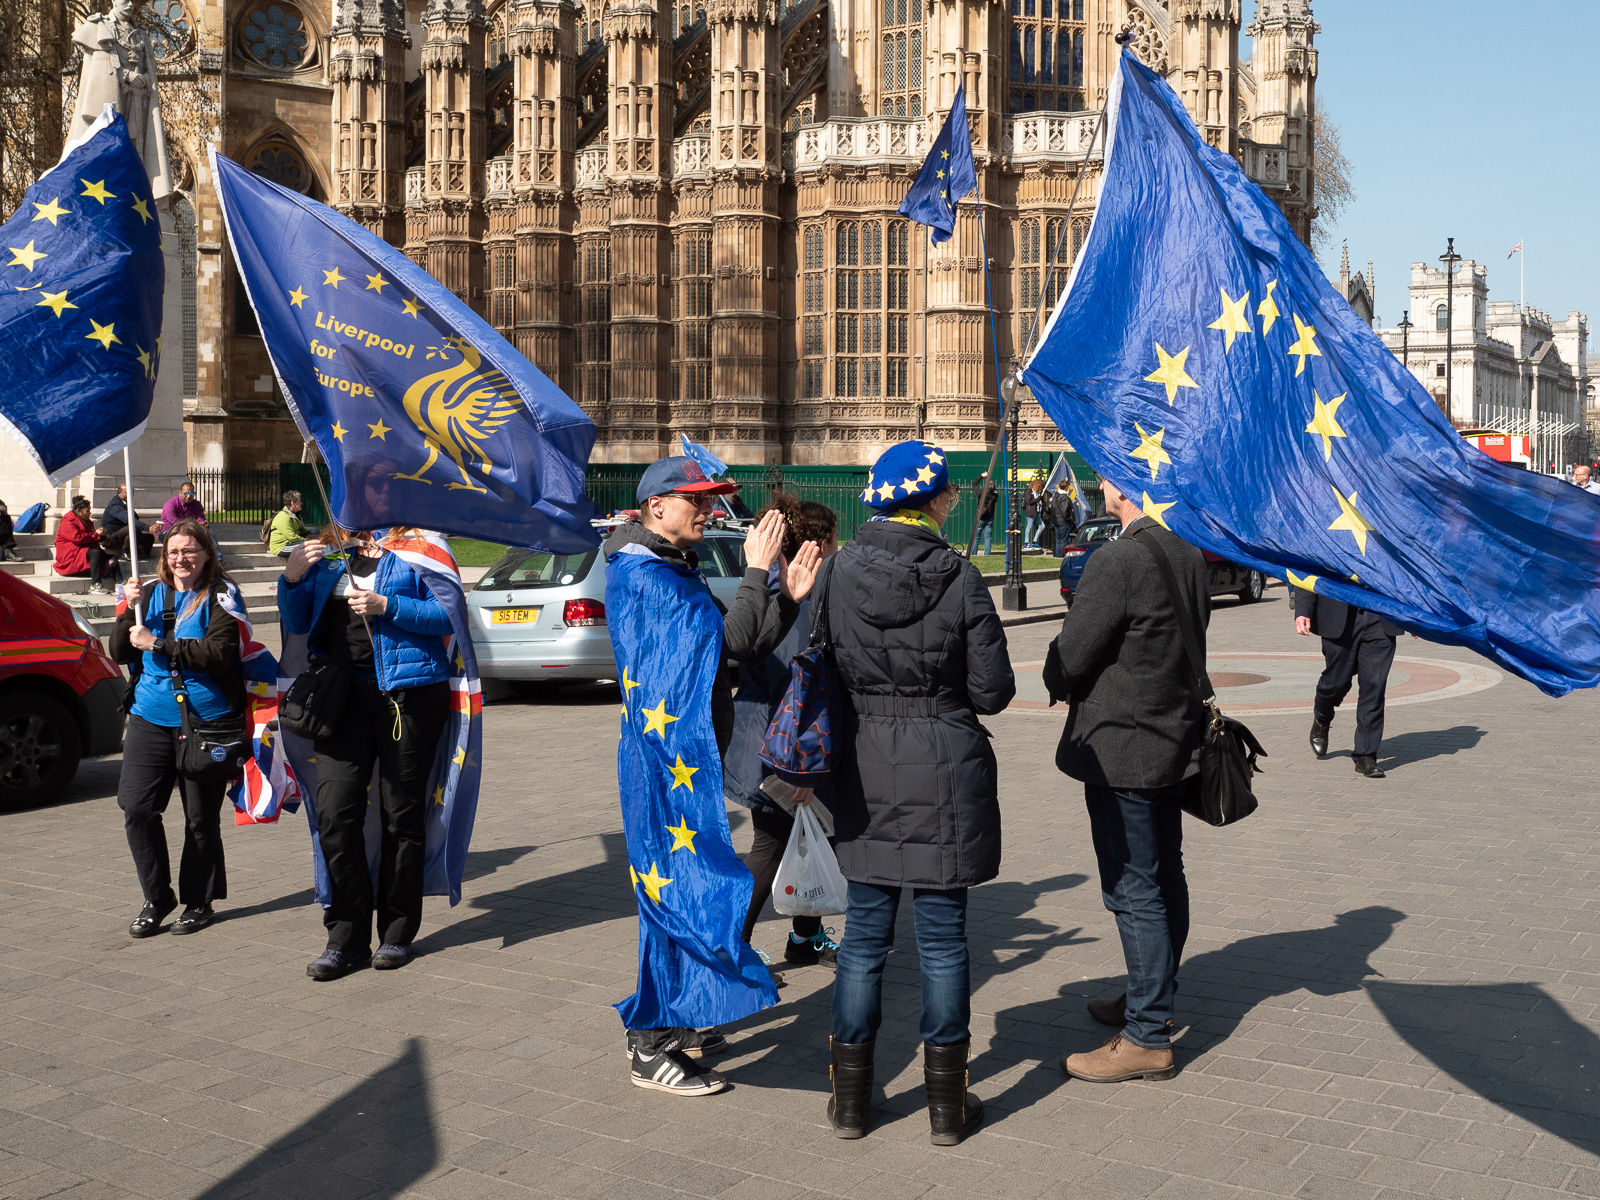 Anti-Brexit protestors with (and wrapped in) EU flags